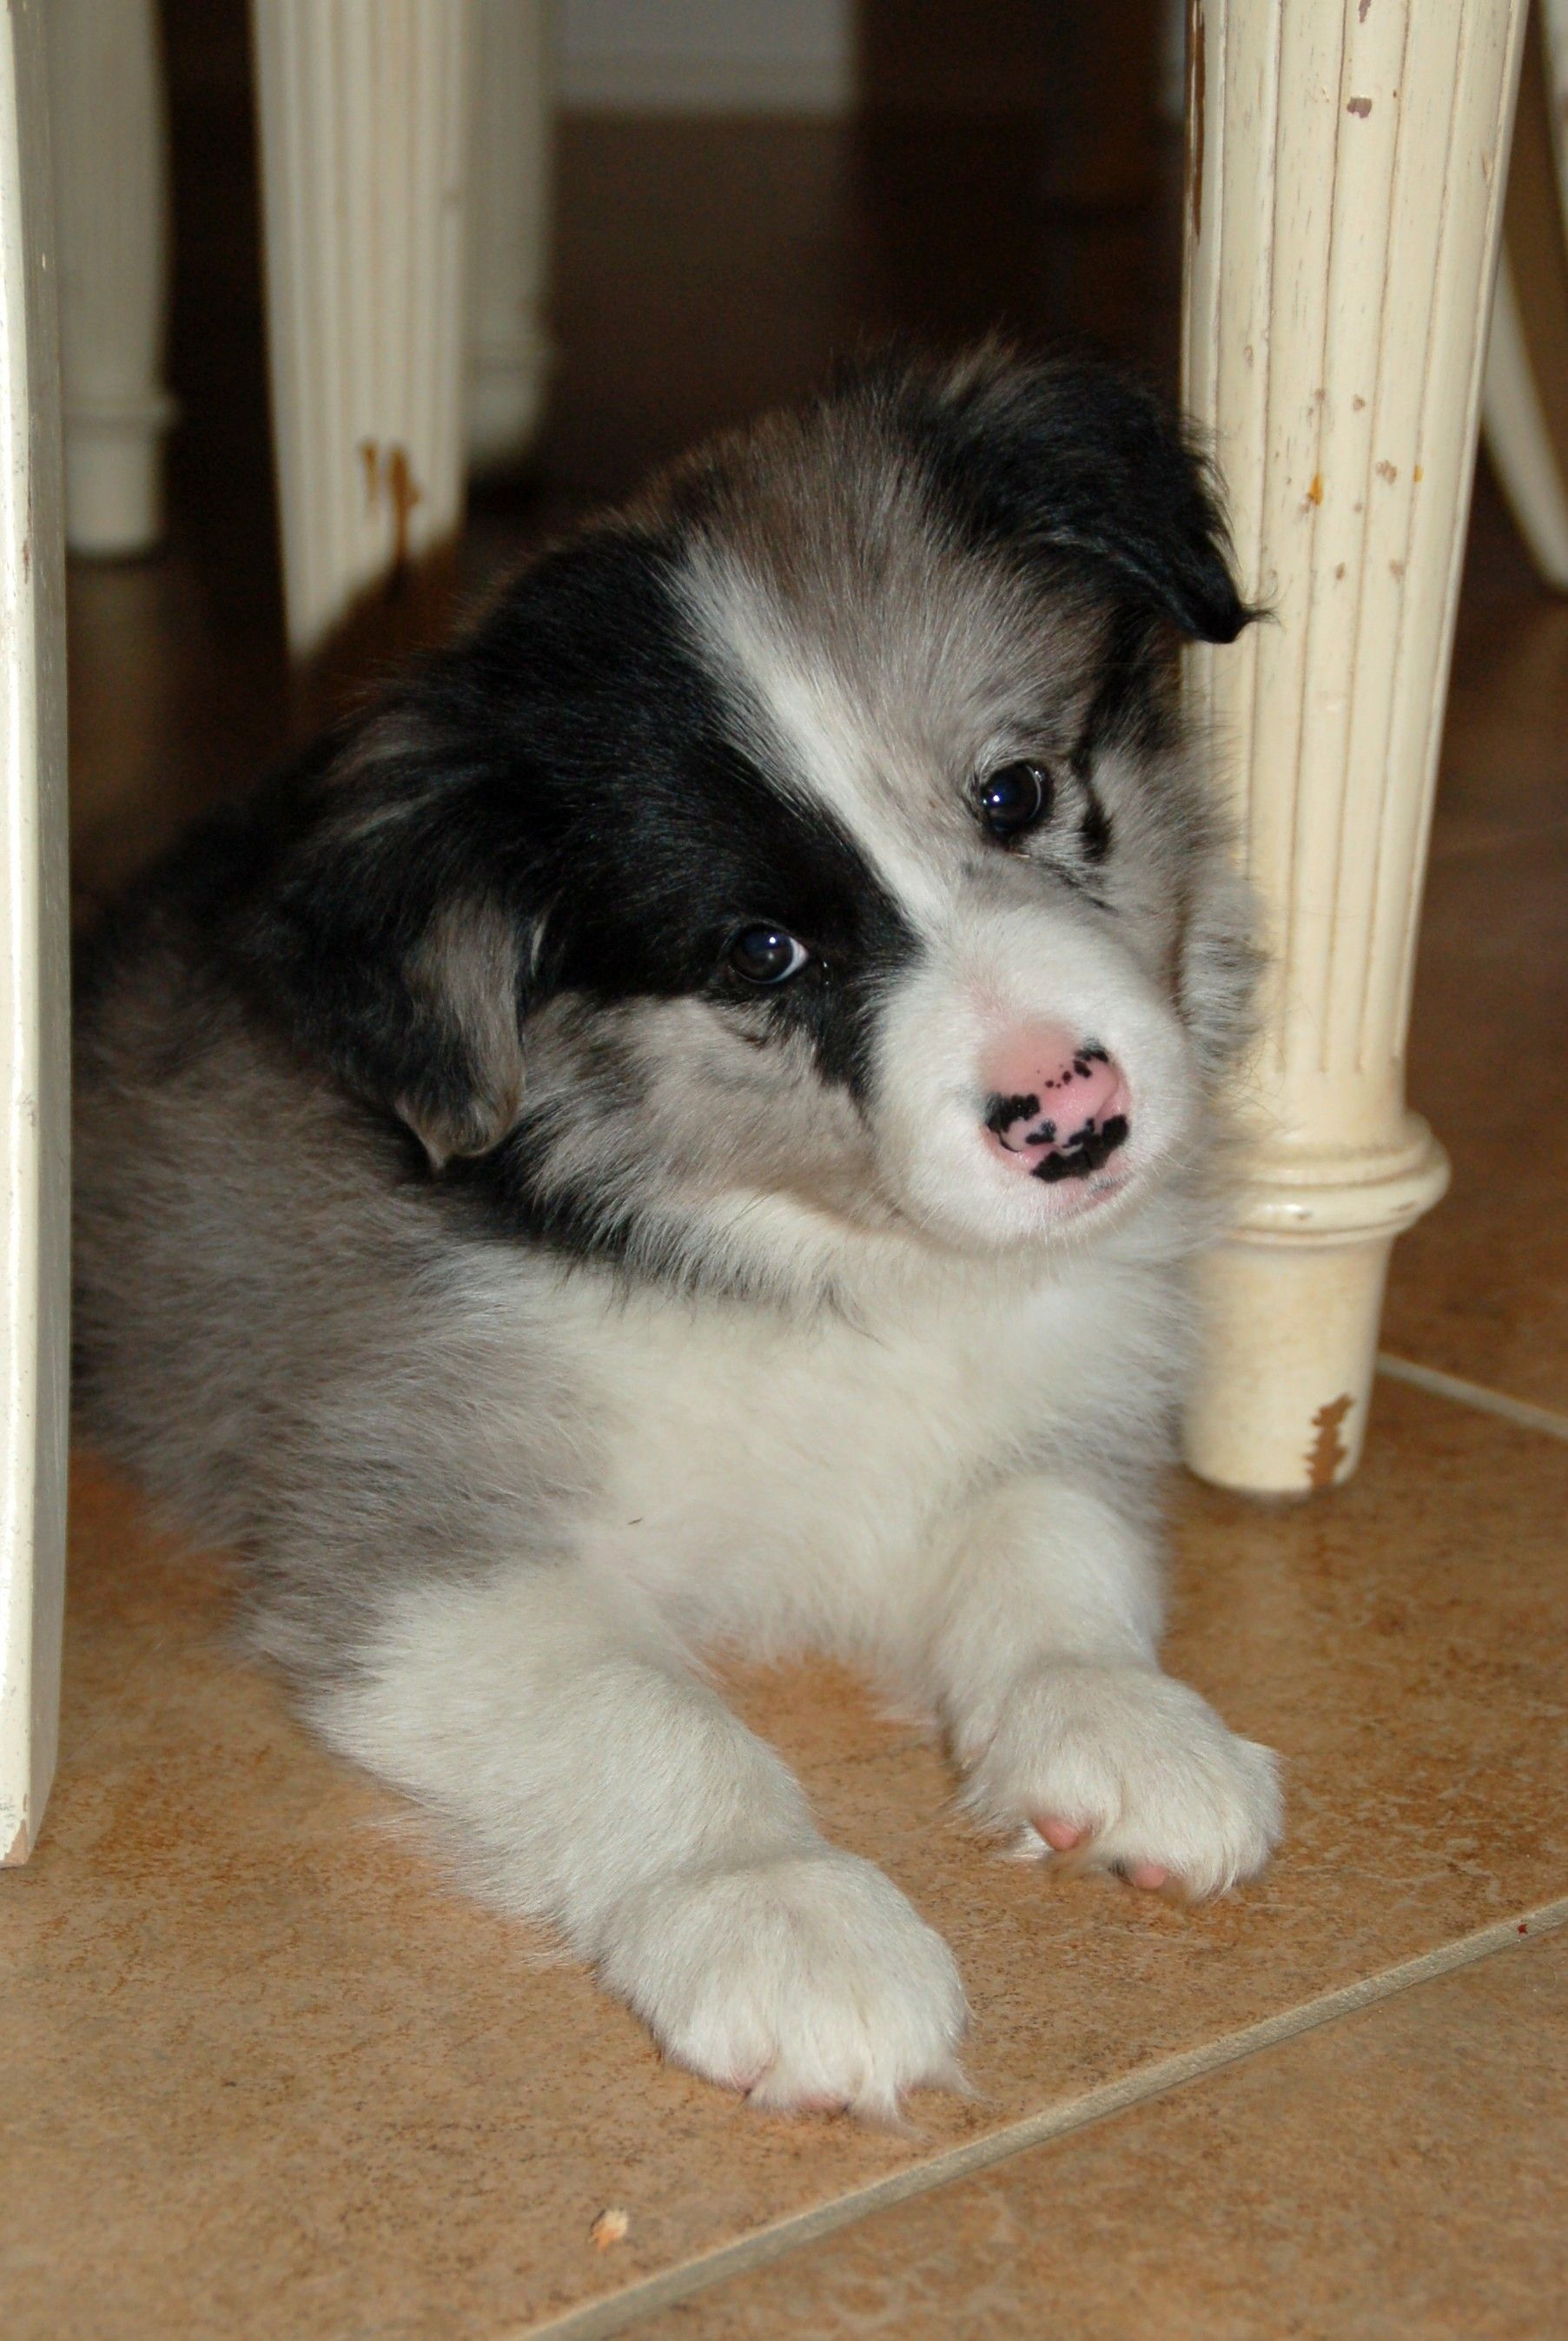 Mom Of 3 With A Phd Border Collie Puppies Collie Puppies Puppies And Kitties